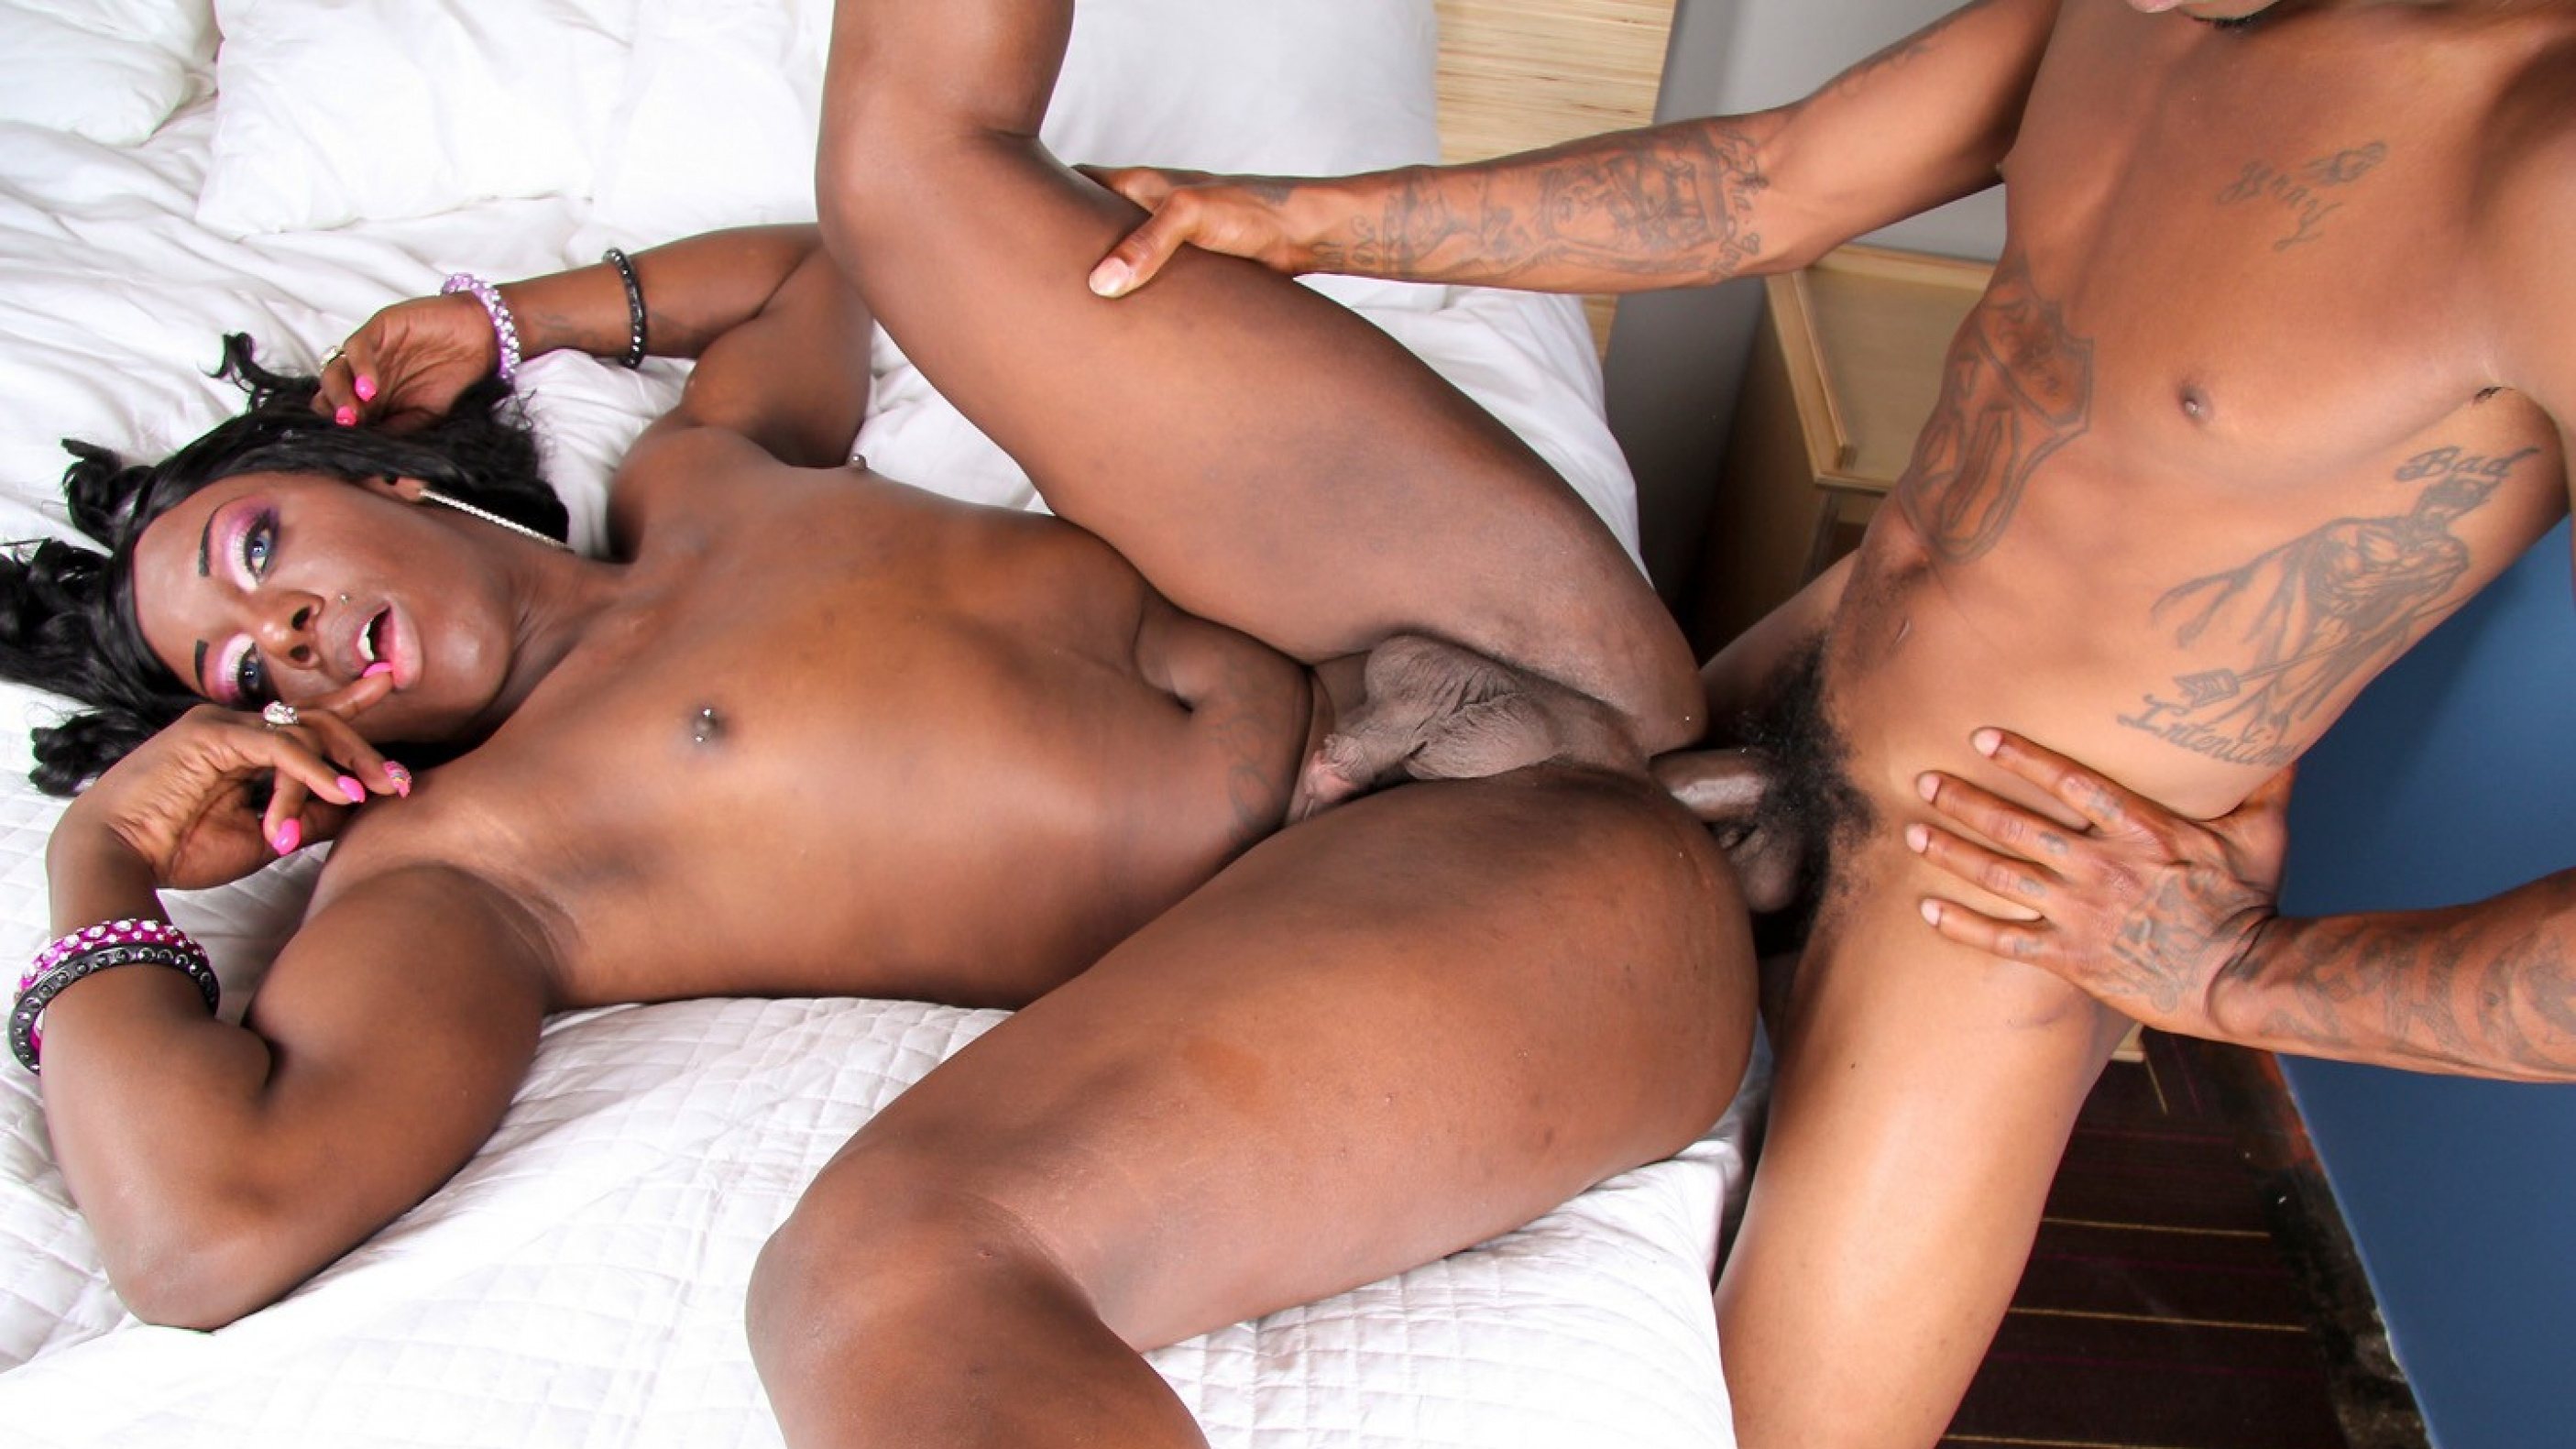 Black Hubby Fucked White Wife